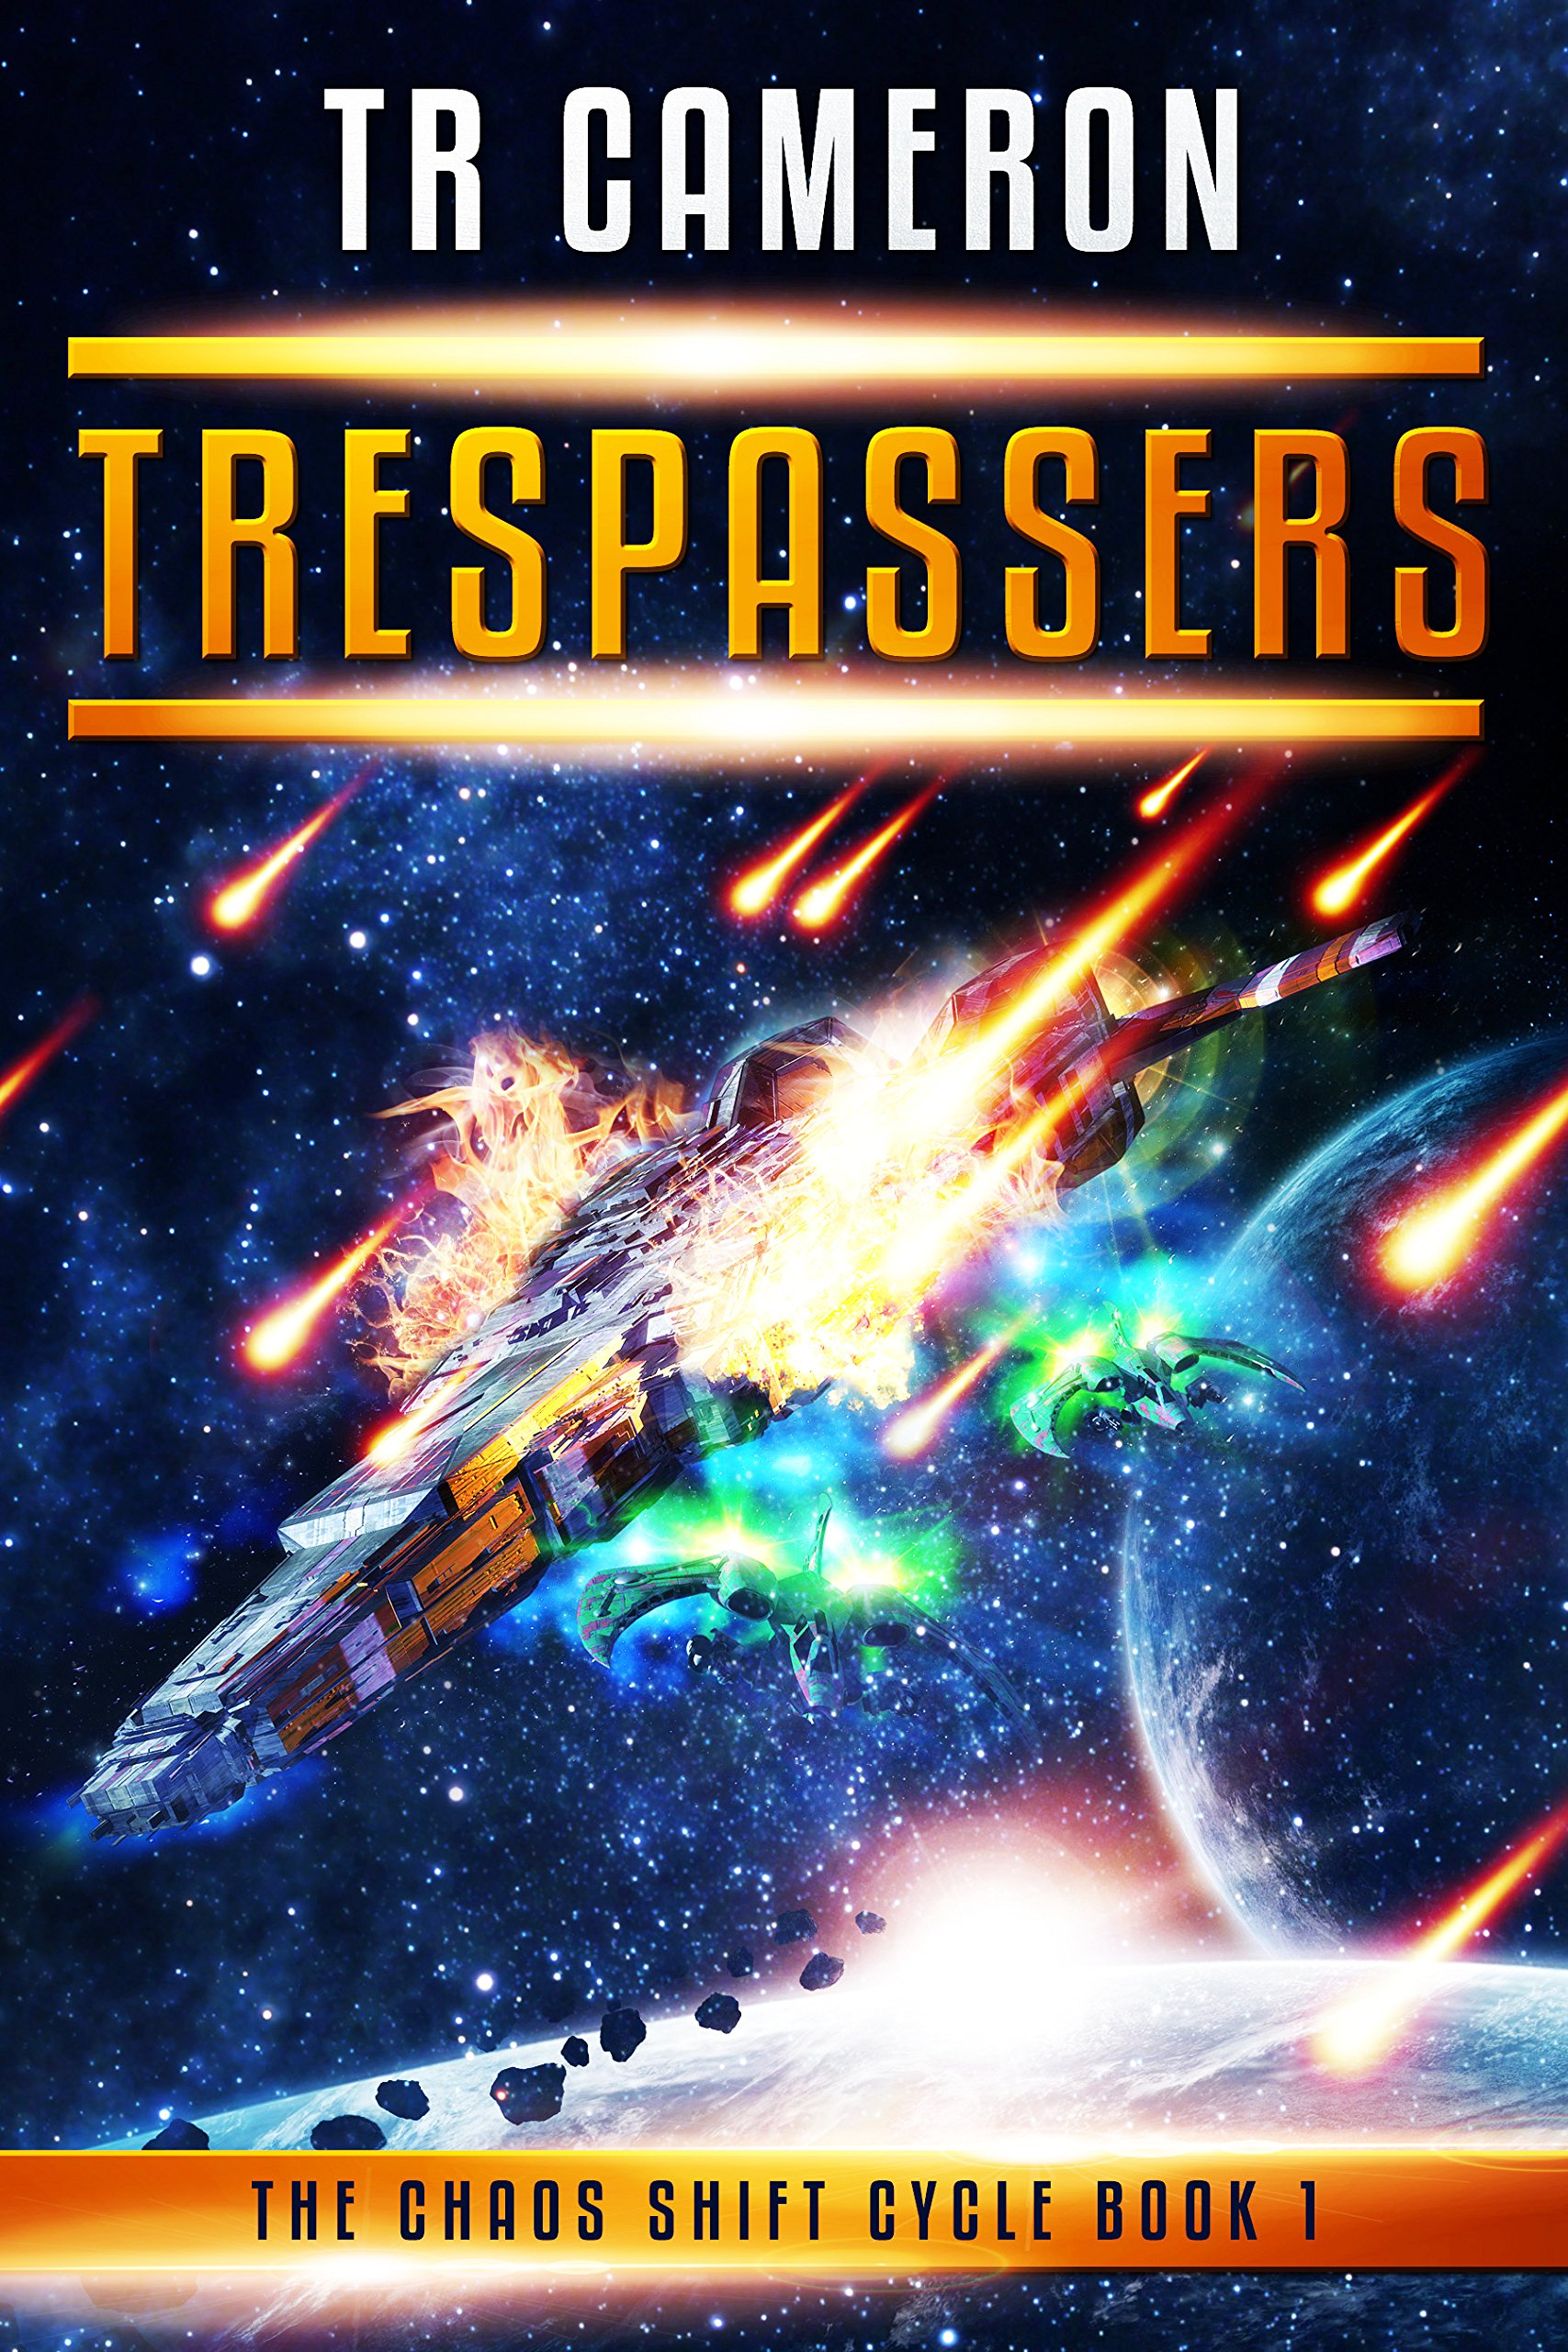 Trespassers: A Military Science Fiction Space Opera (The Chaos Shift Cycle Book 1)